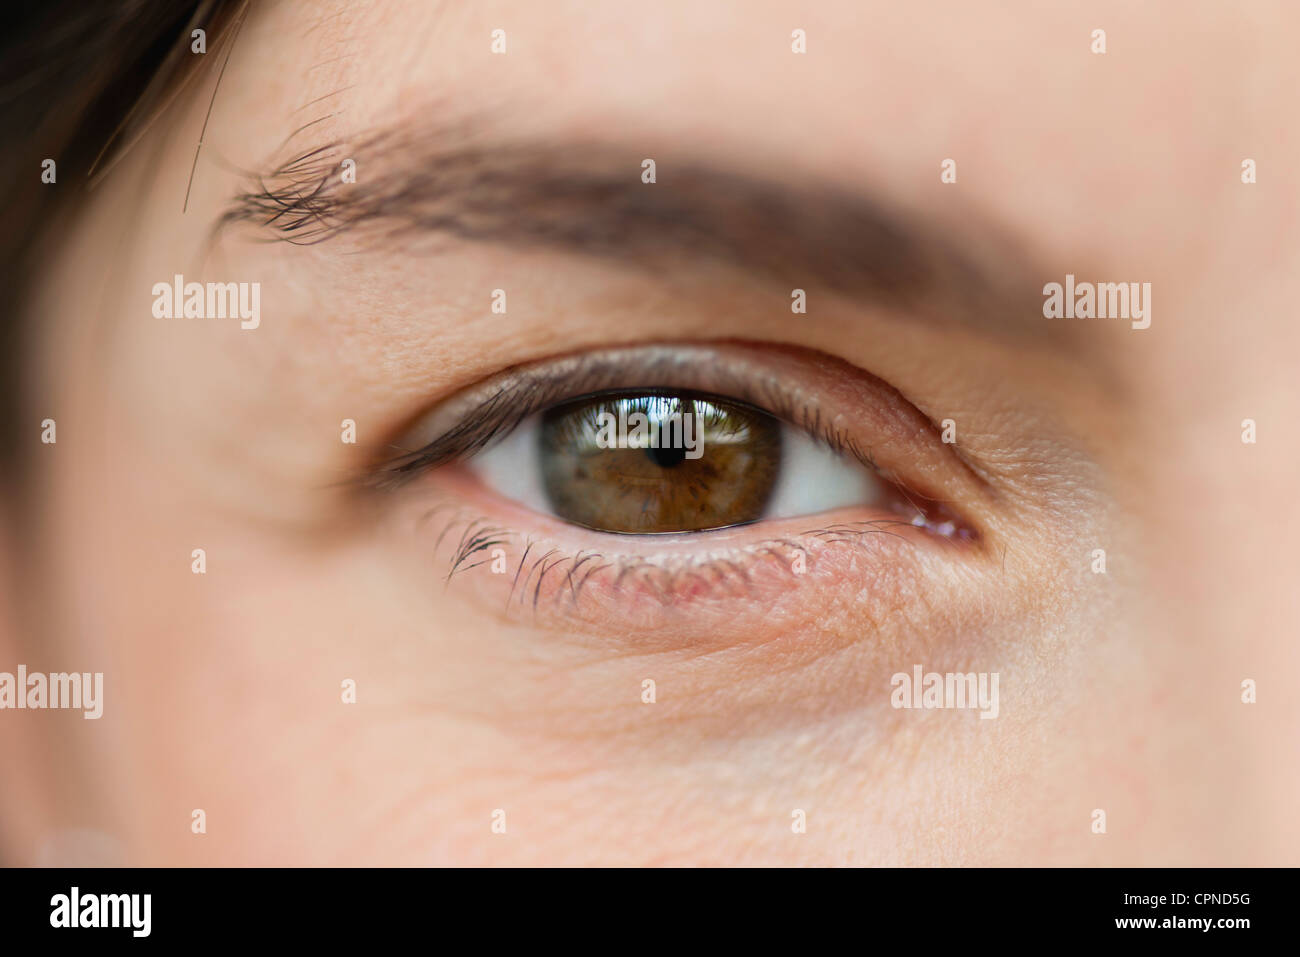 Close-up of woman's eye, cropped - Stock Image